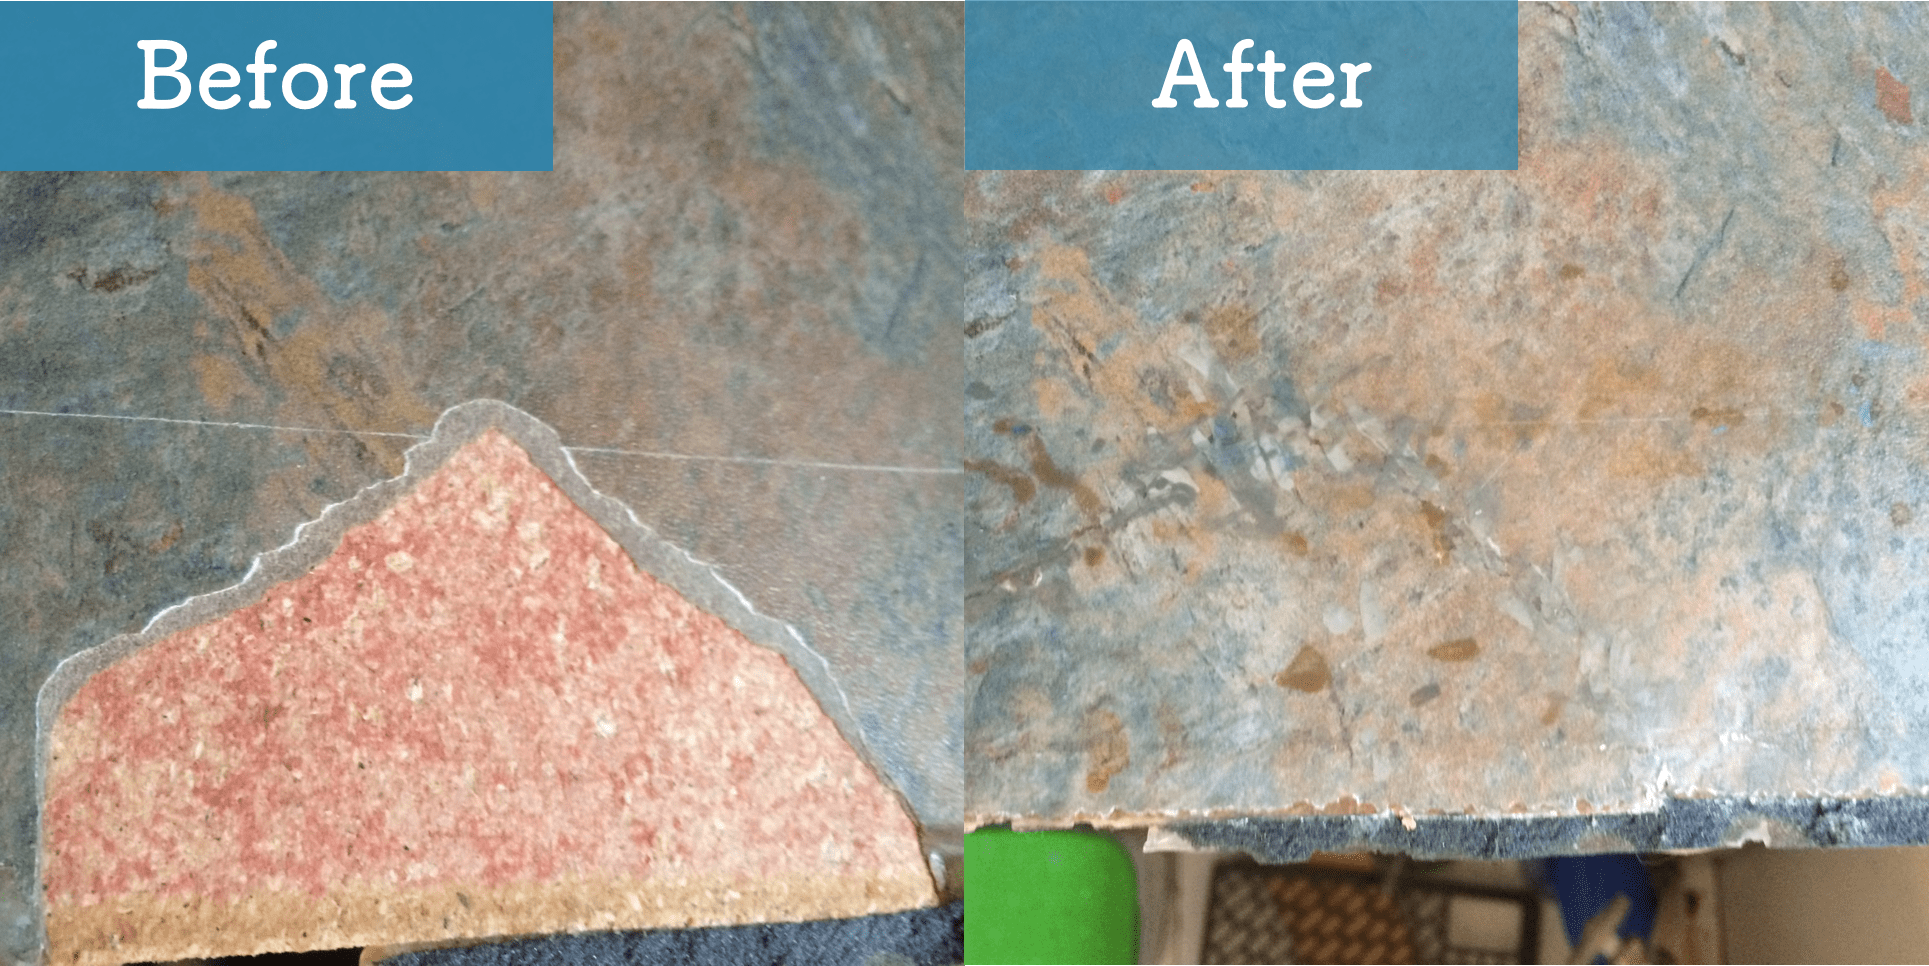 chipped polymer counter before and after image